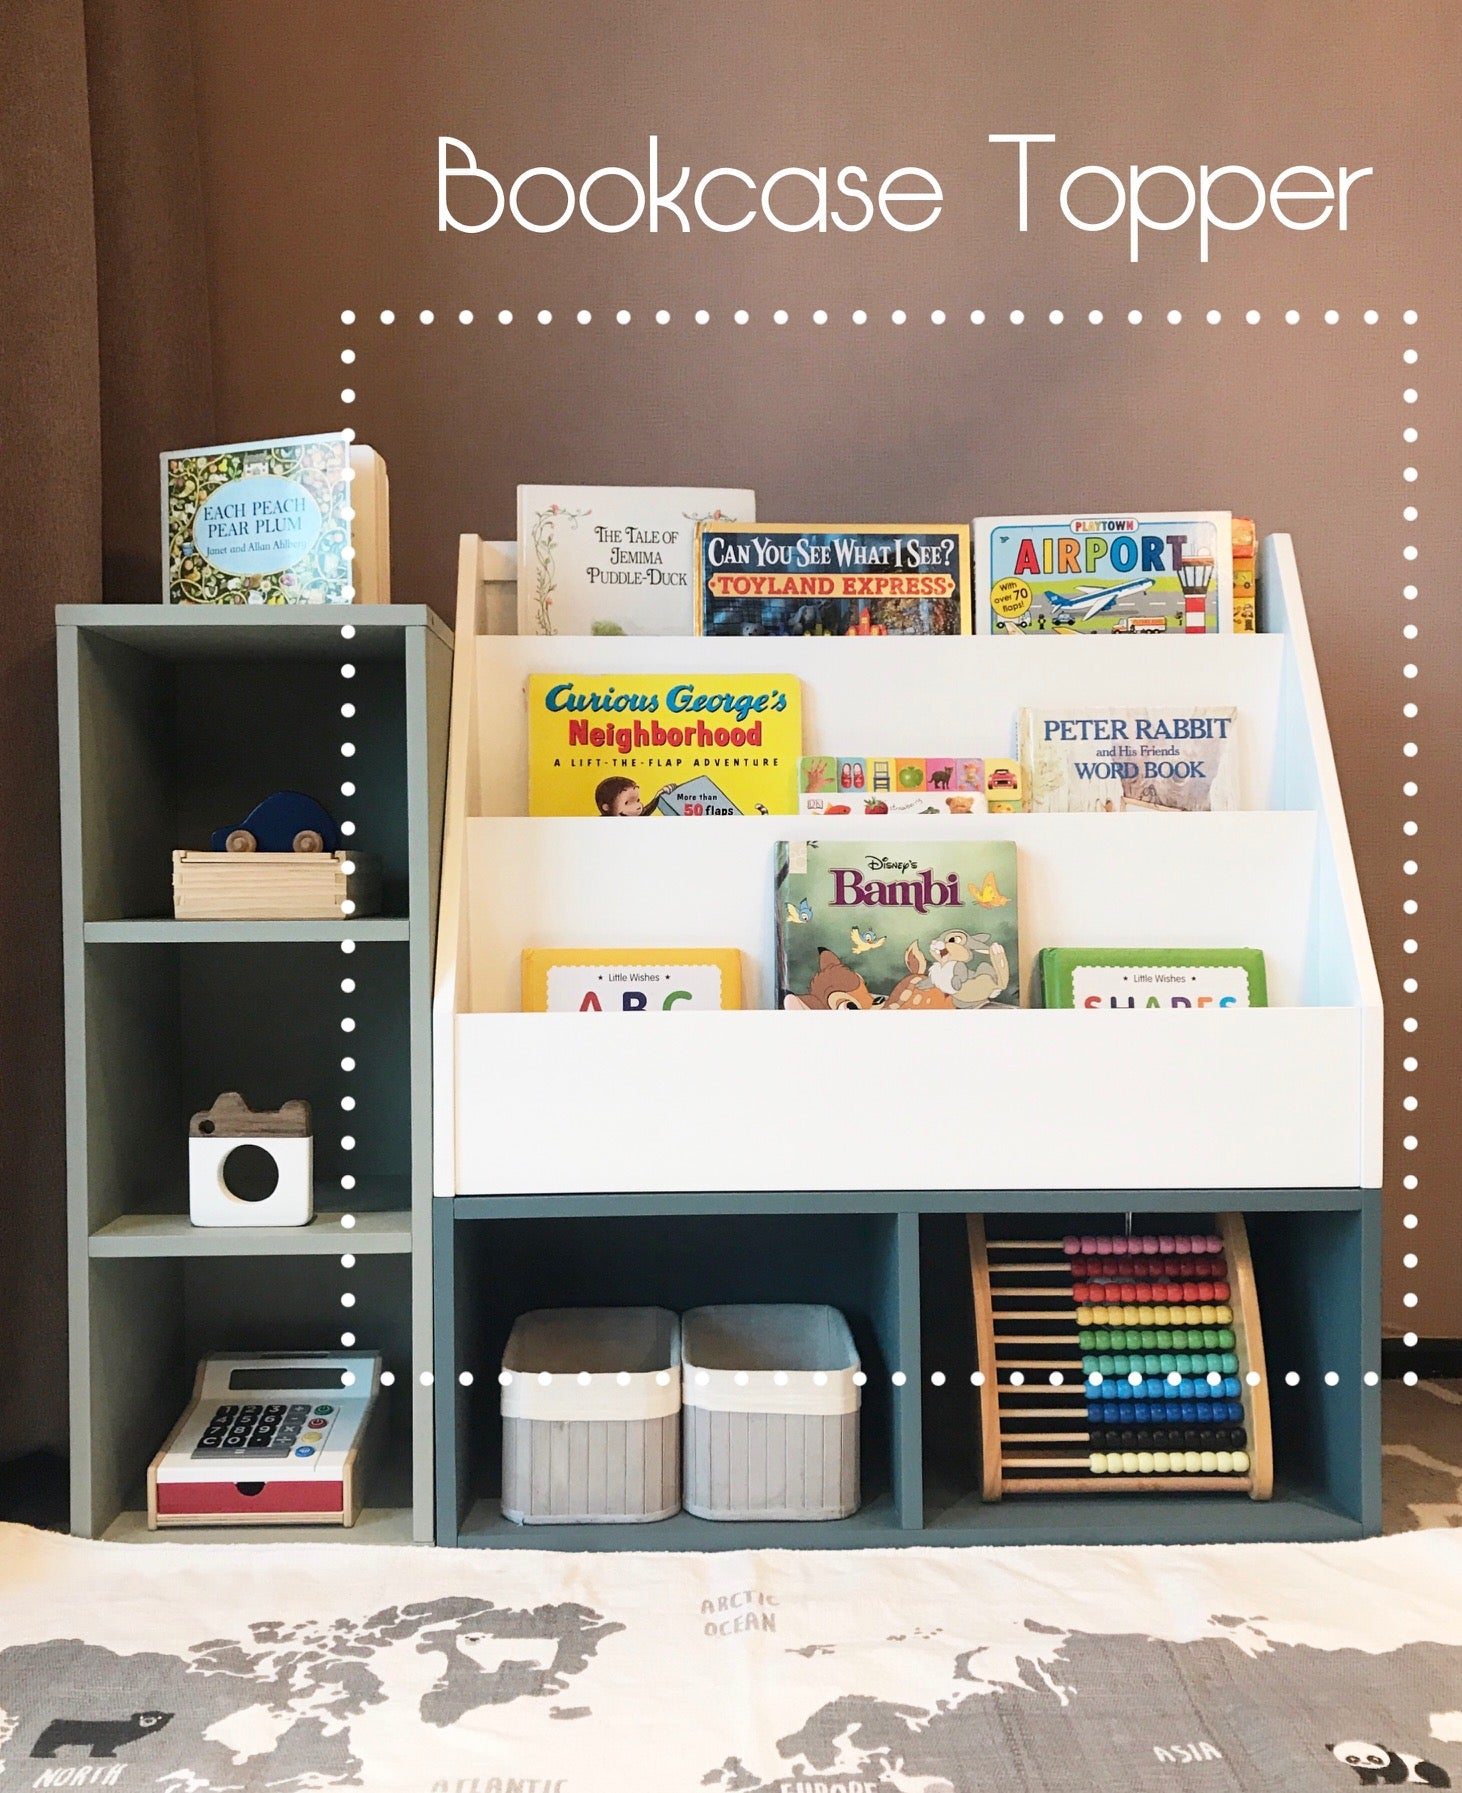 Bookcase Topper (SOLD OUT)